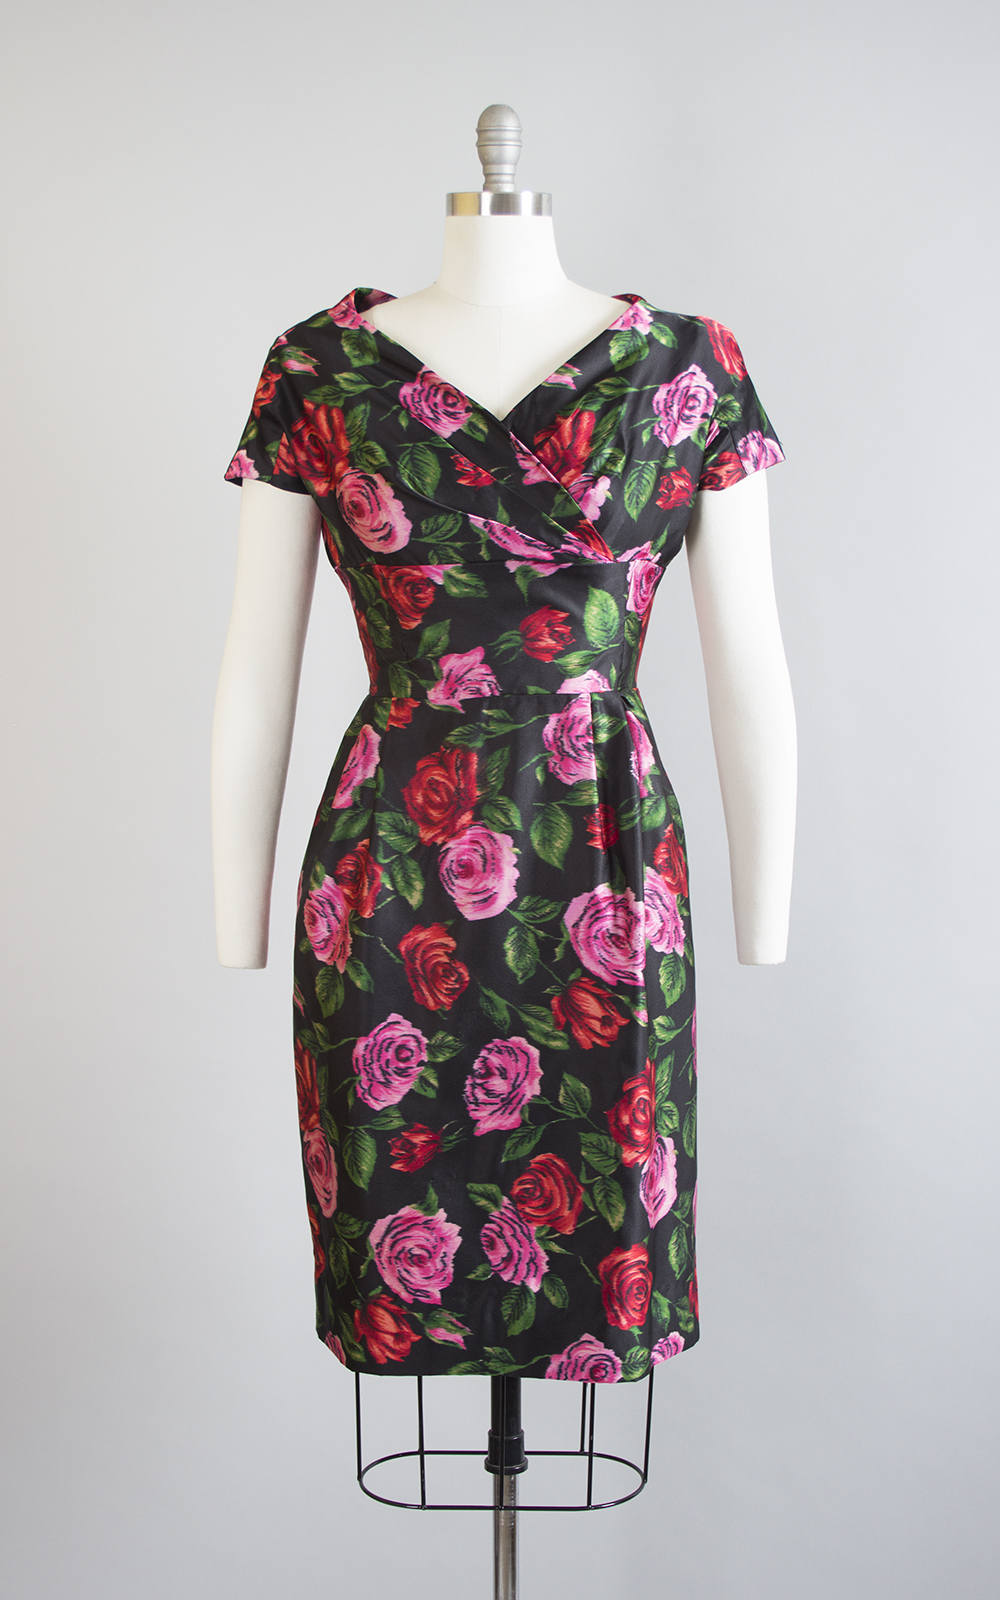 Vintage 1950s Dress | 50s Rose Floral Silk Satin Printed Red Pink Black Wiggle Cocktail Party Dress (small)